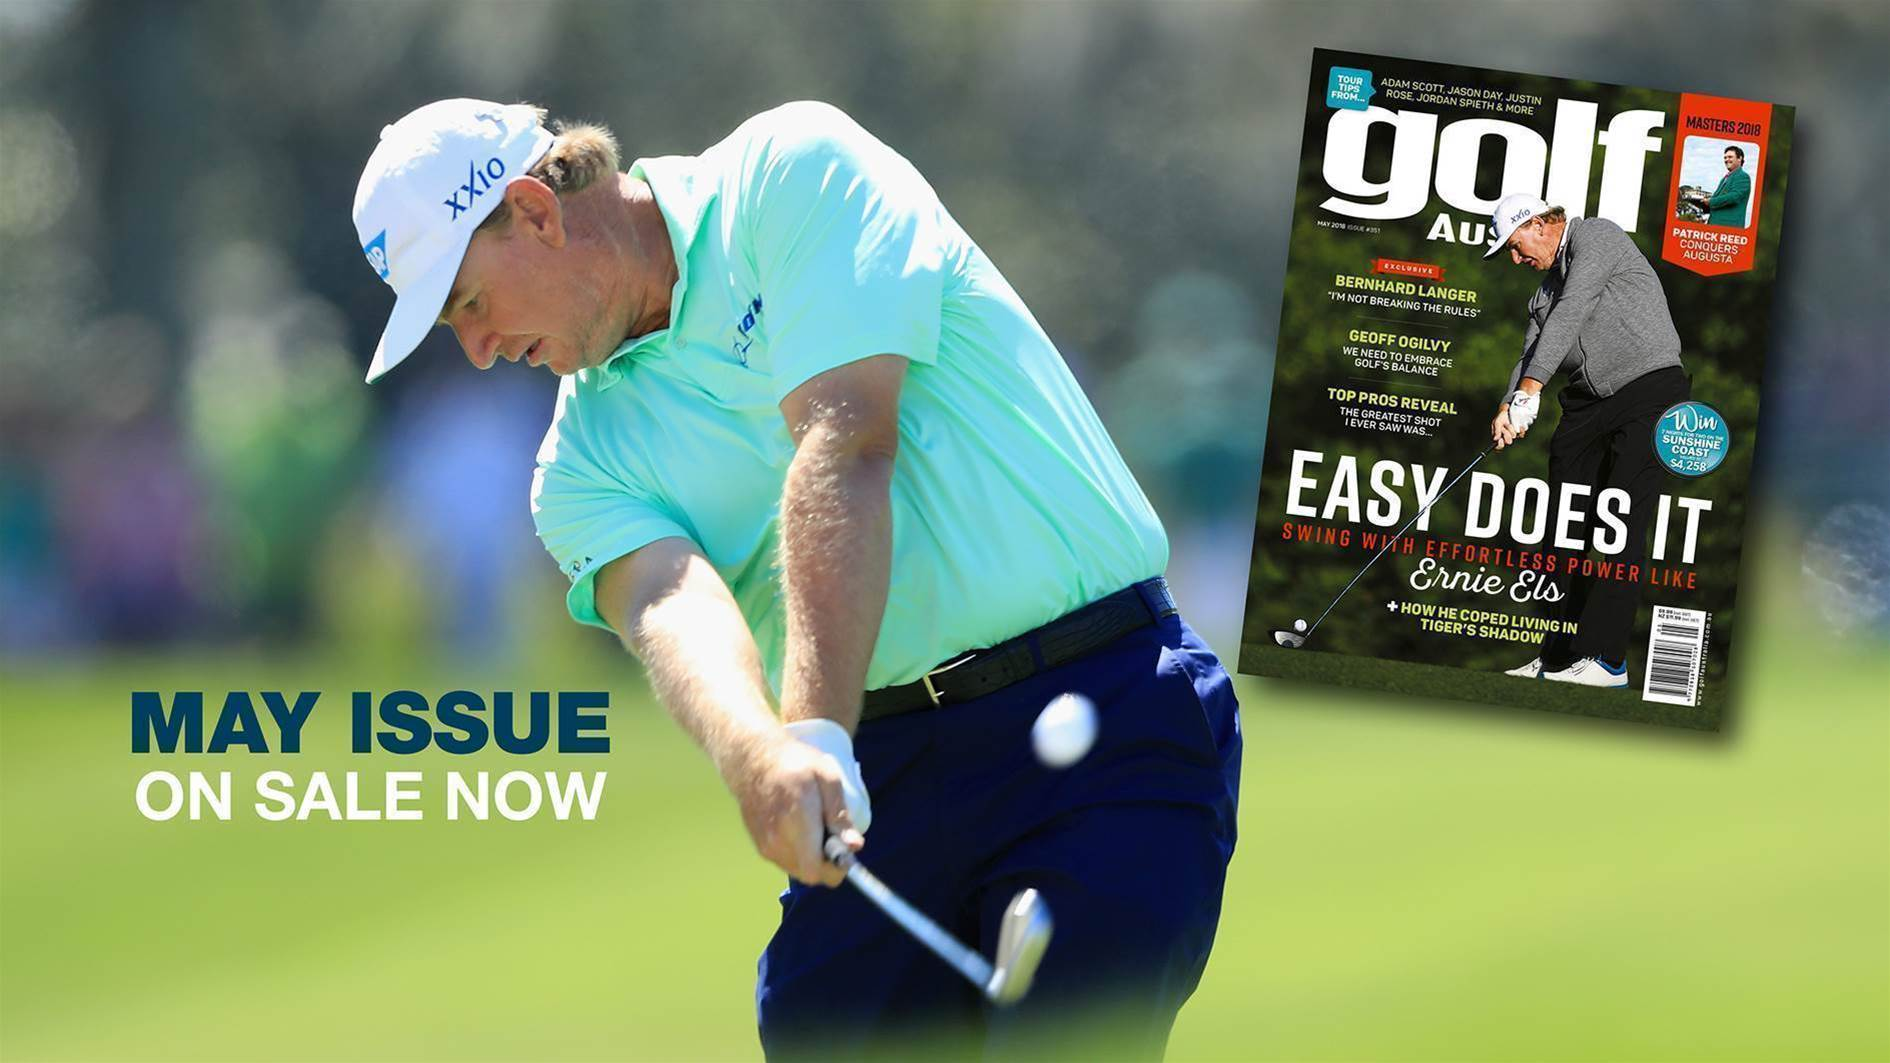 Inside Golf Australia May 2018